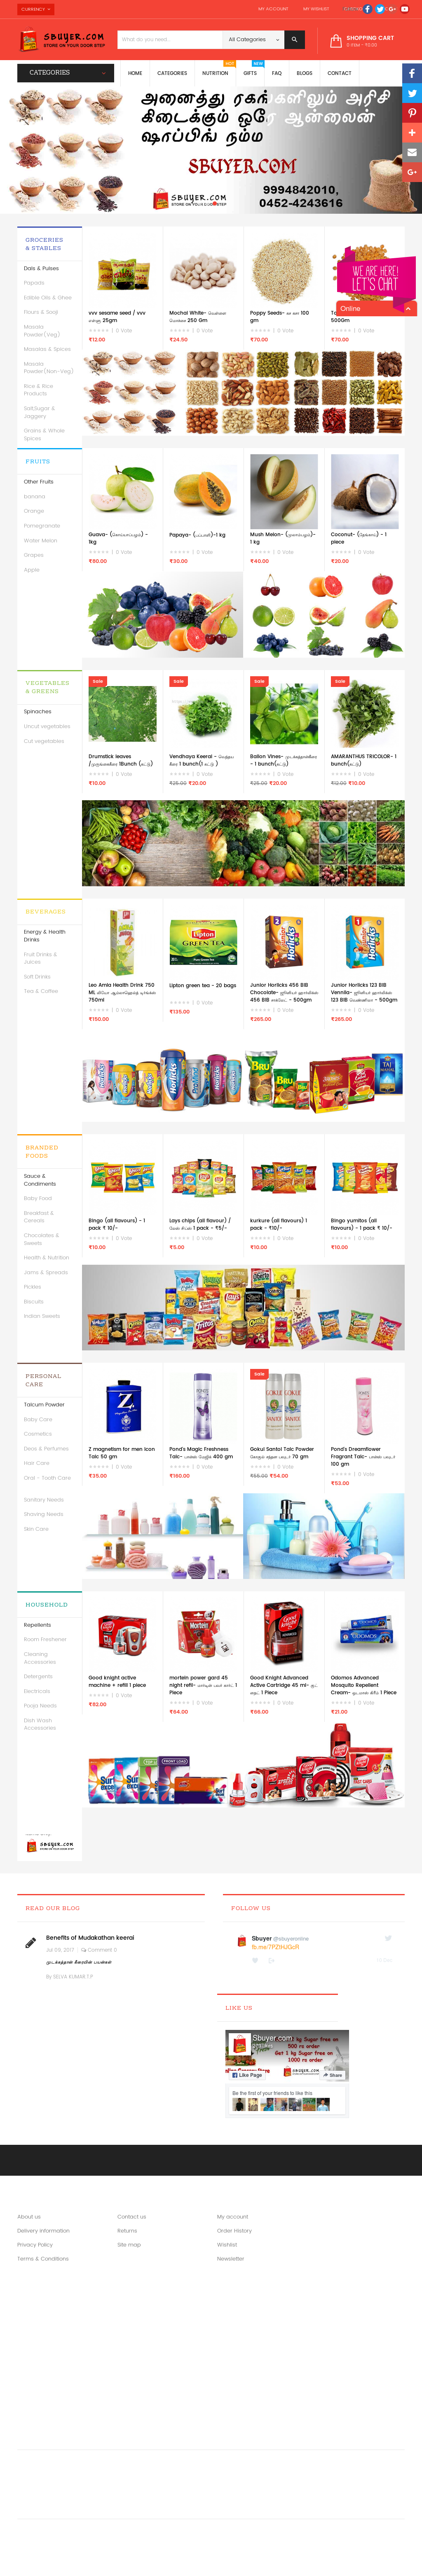 Sbuyer Online Grocery Store Madurai Competitors, Revenue and